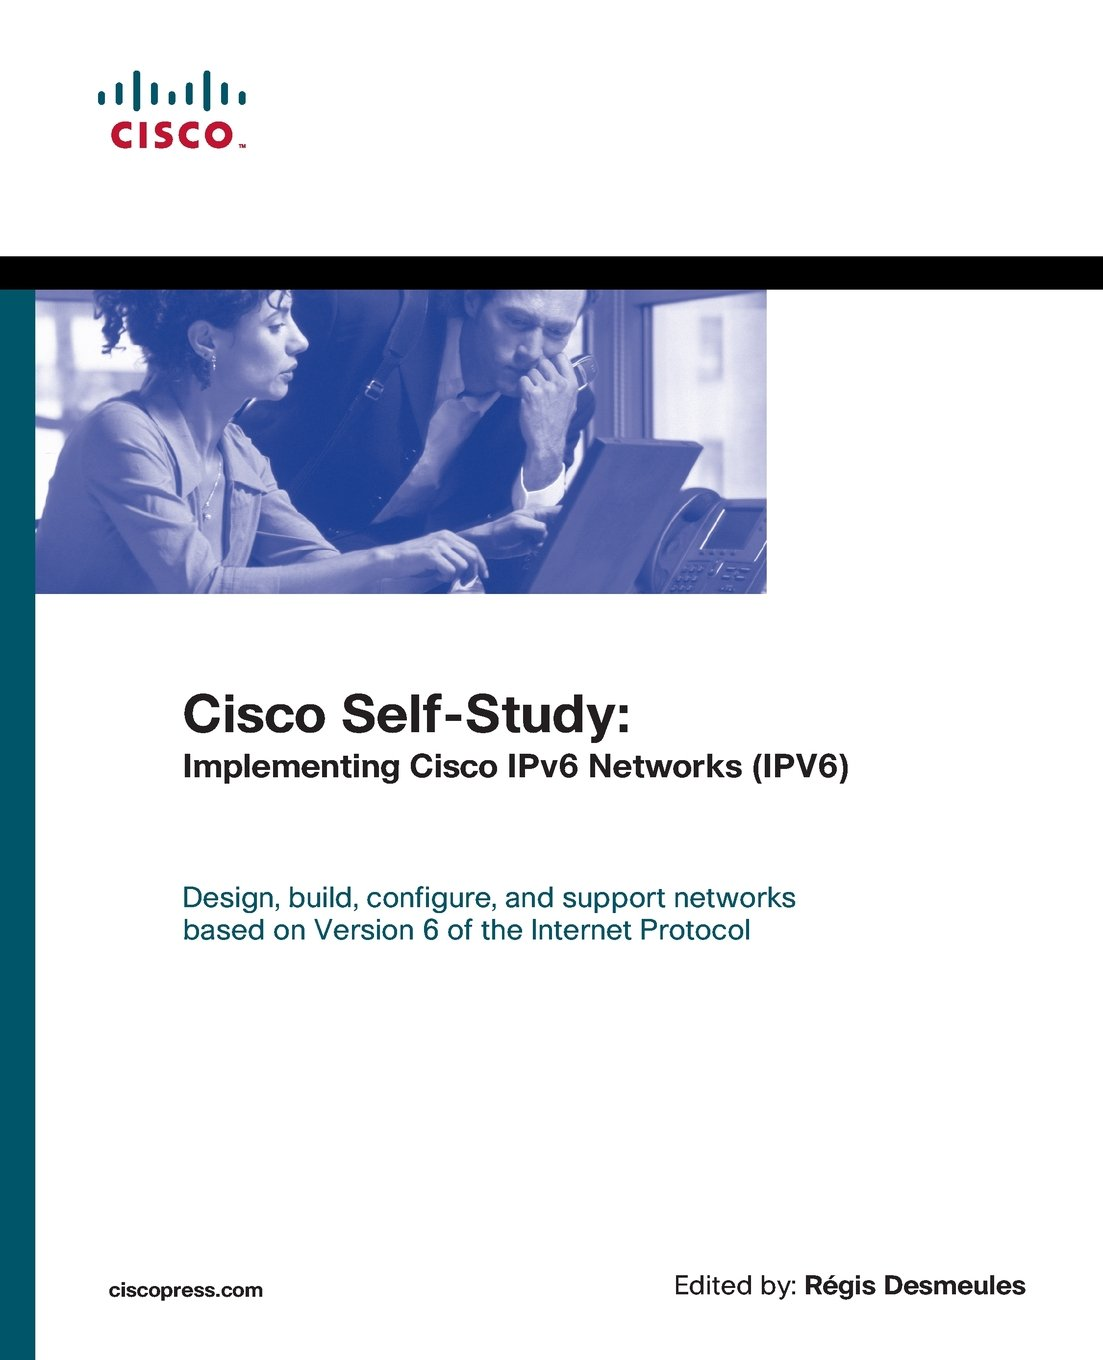 Cisco Self-Study: Implementing Cisco IPv6 Networks (IPV6) (paperback) by Cisco Press